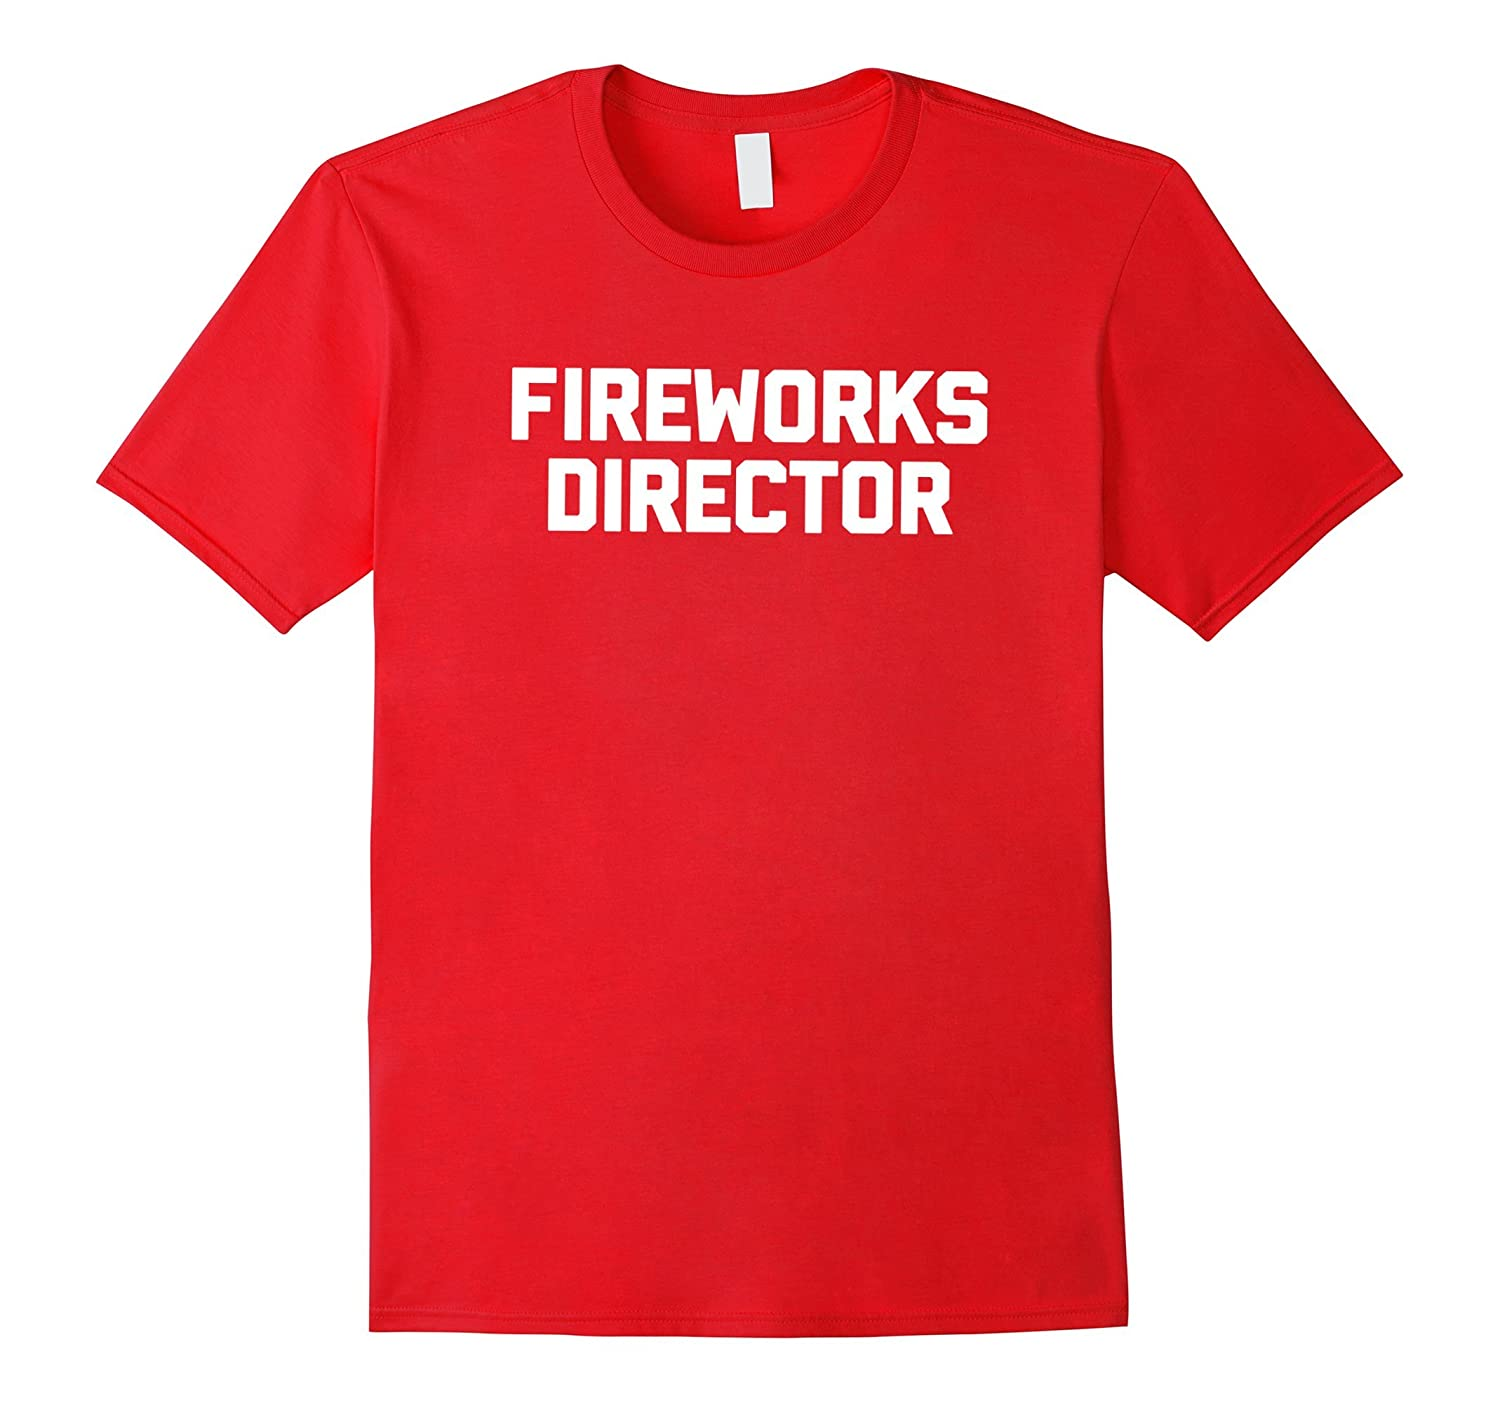 4th Of July Shirt Fireworks Director T-Shirt funny saying-PL